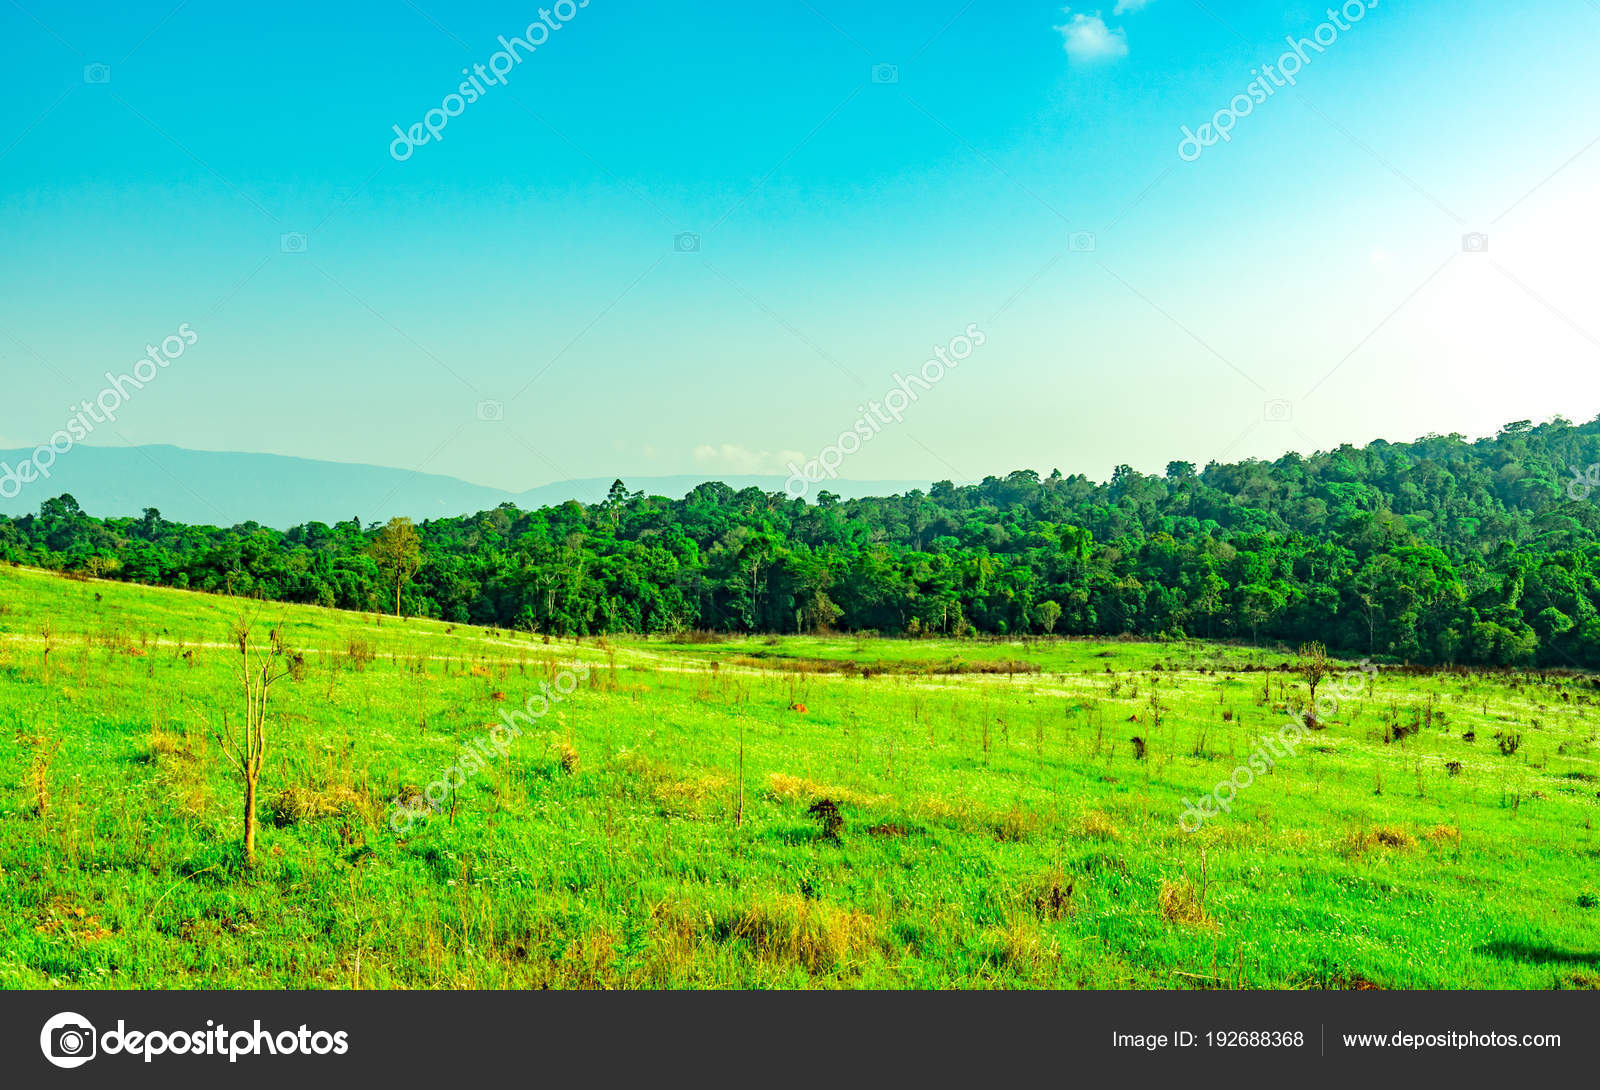 Beautiful rural landscape of green grass field with white flowers on beautiful rural landscape of green grass field with white flowers on clear blue sky background in the morning on sunshine day forest behind the hill izmirmasajfo